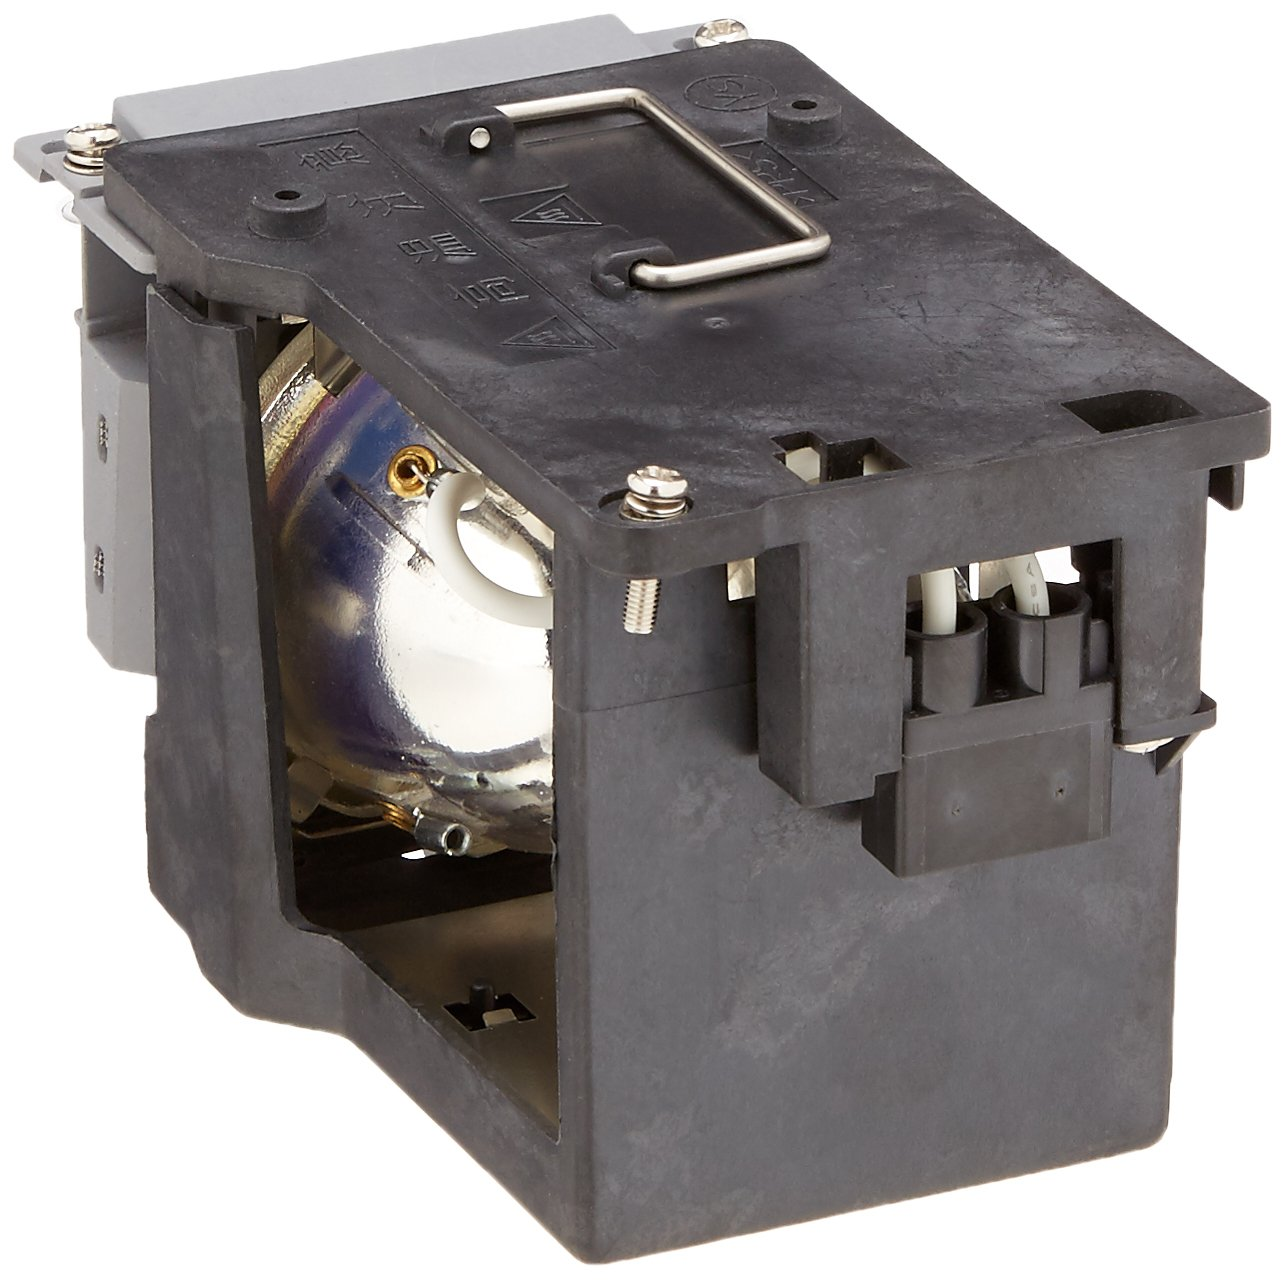 Toshiba Tdp Tw100 Projector Replacement Lamp With Housing Electric Circuit Electronics